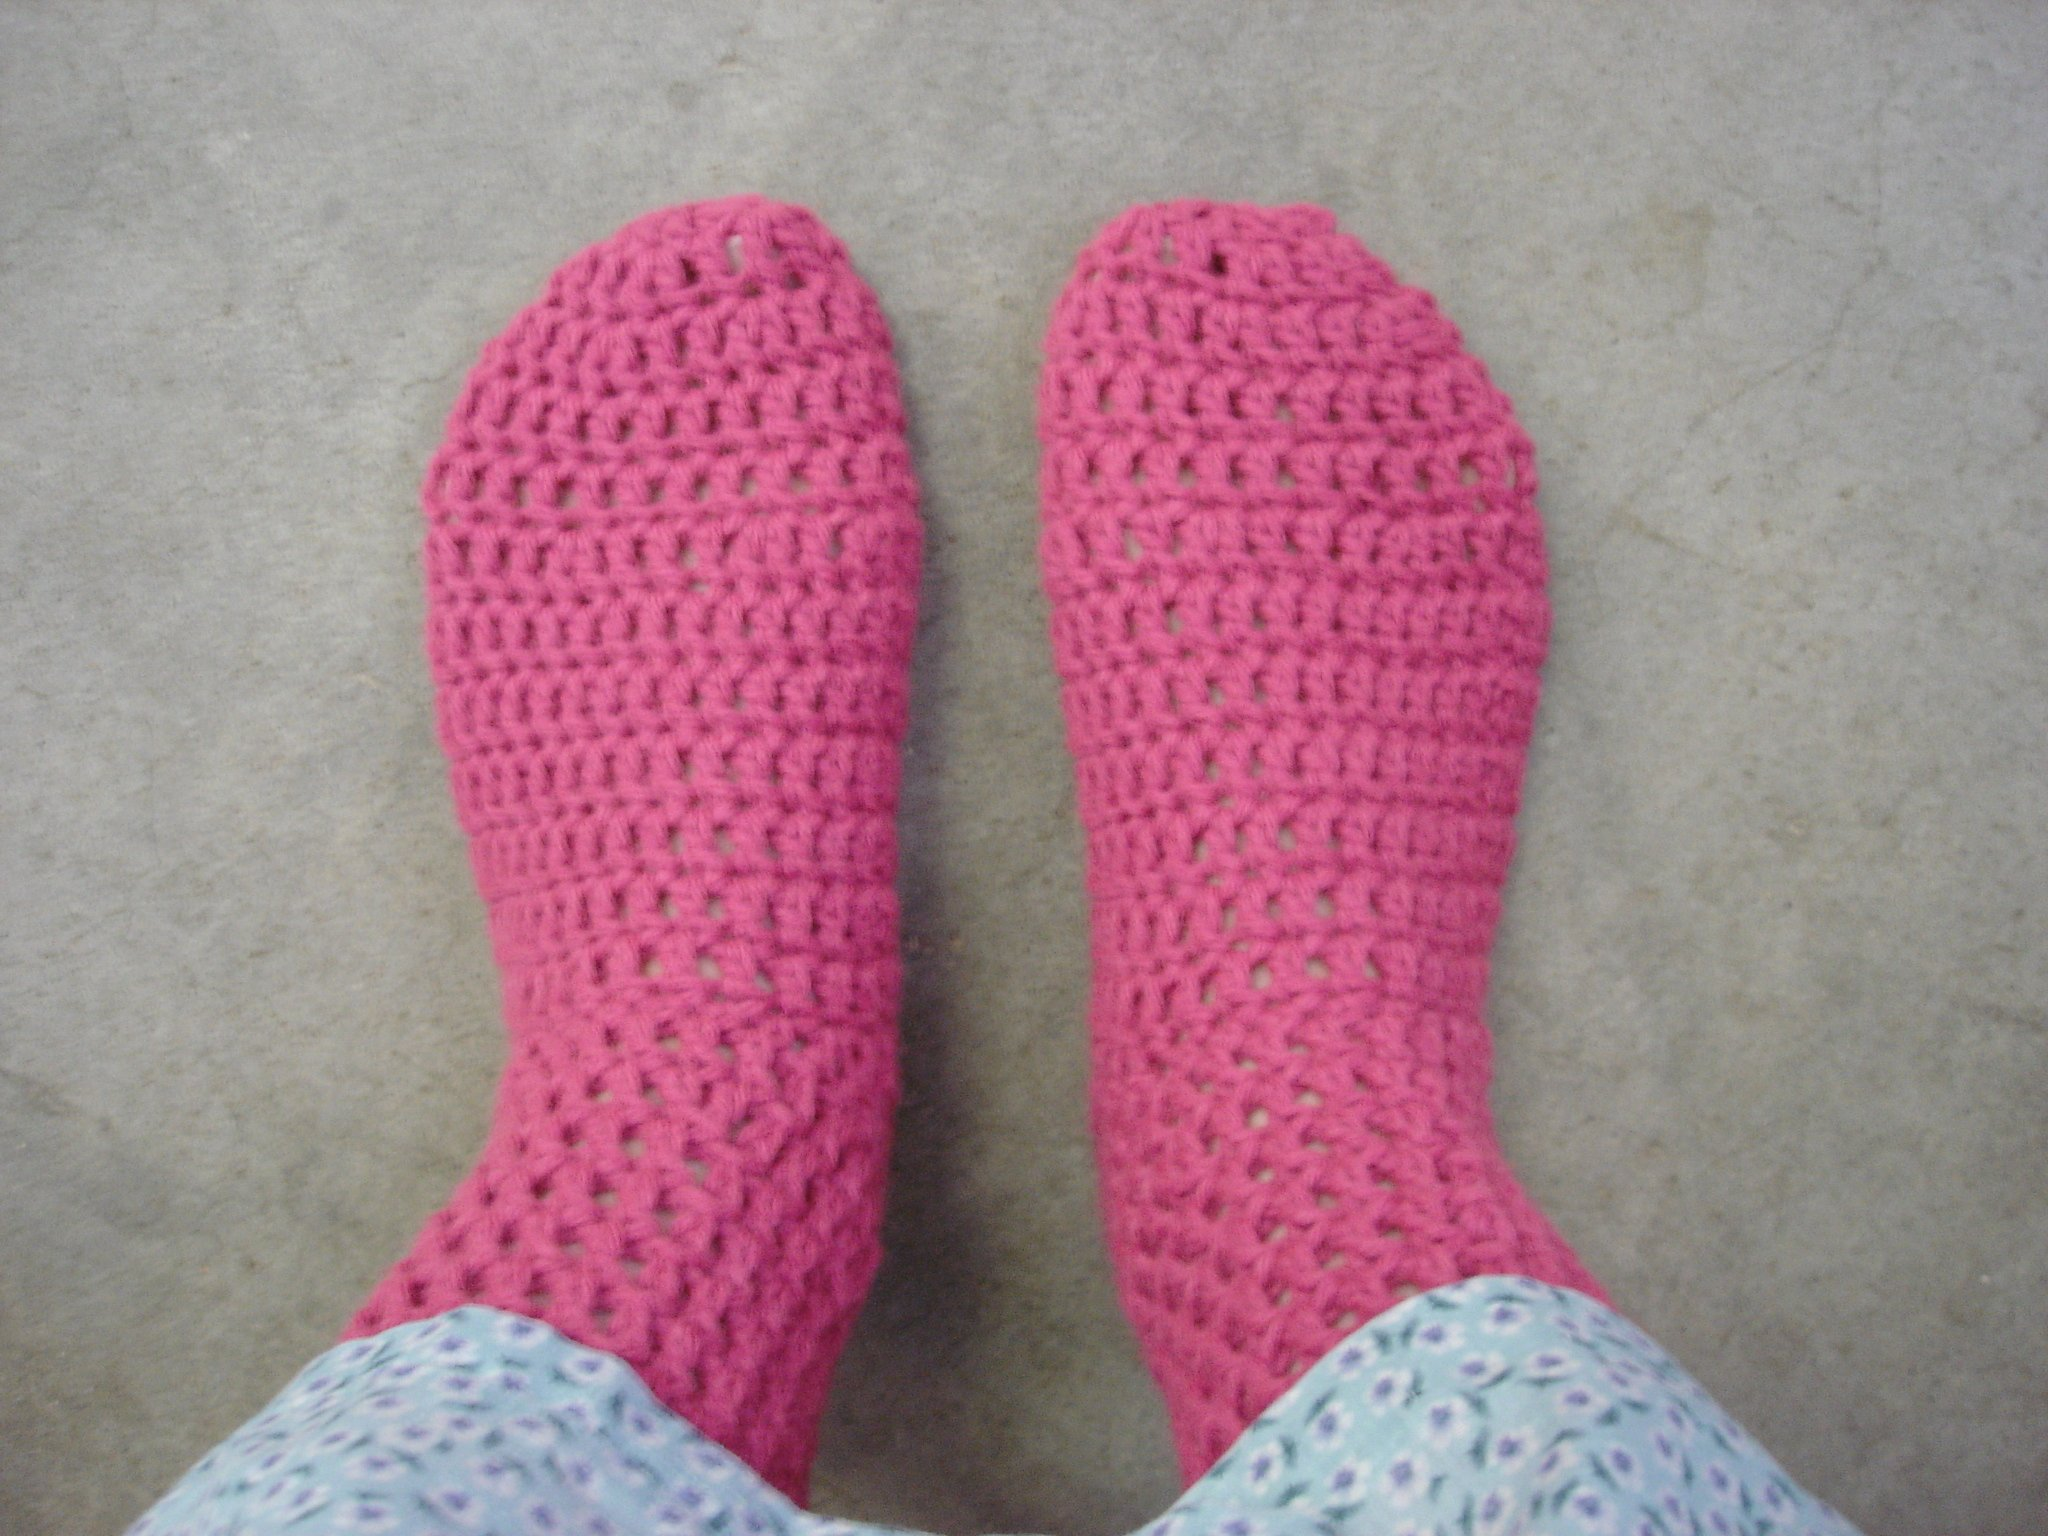 18 crochet sock patterns guide patterns easy crochet socks pattern bankloansurffo Image collections